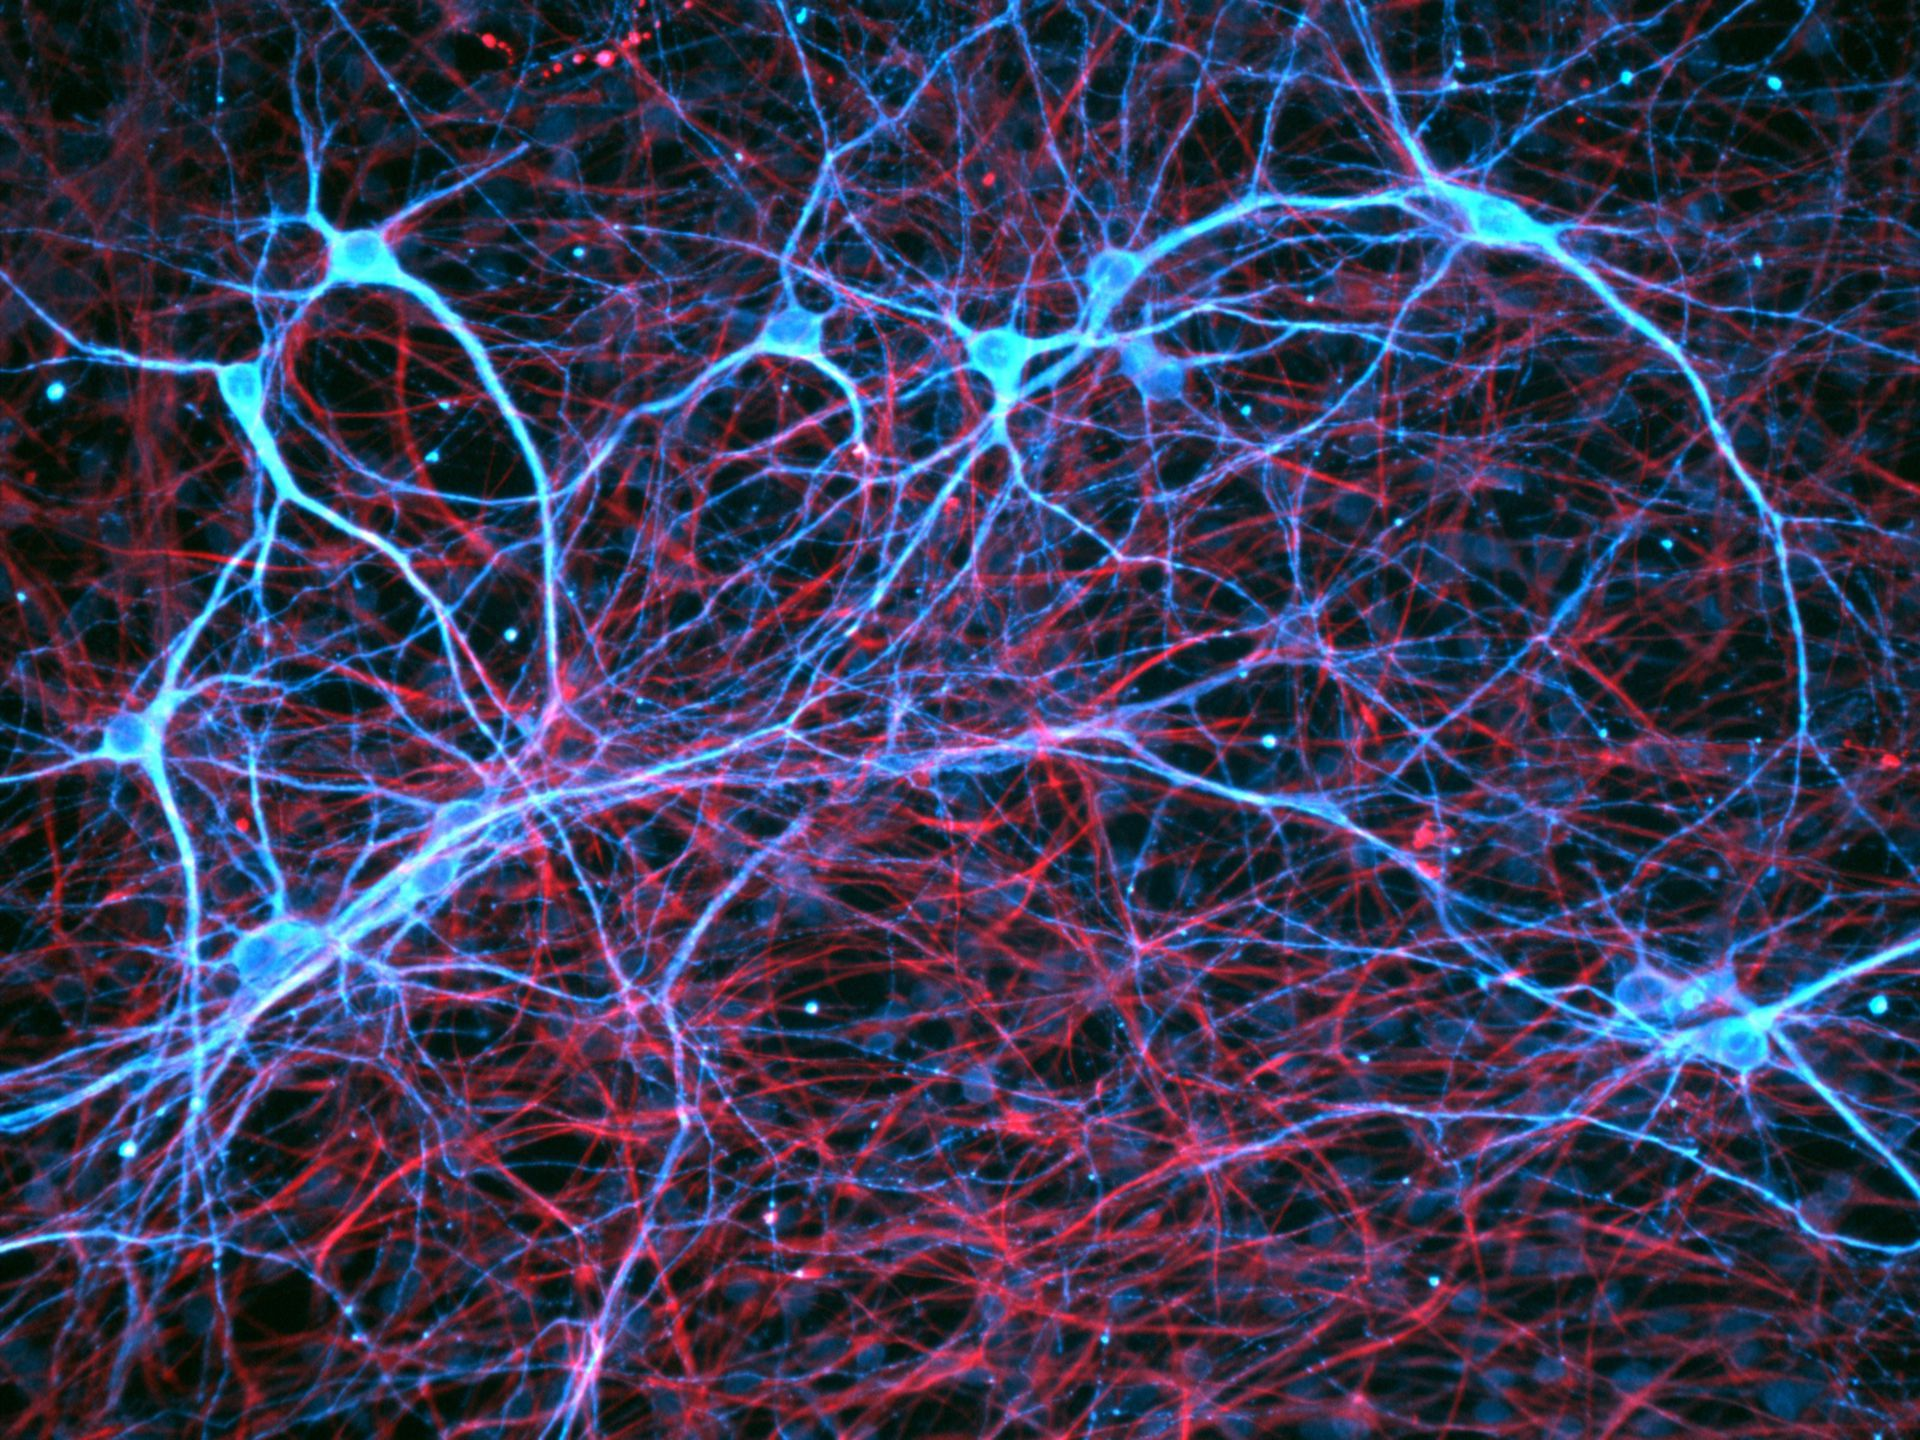 Neural stem cells - Image of the Week - September 7, 2015 - CIL:48107